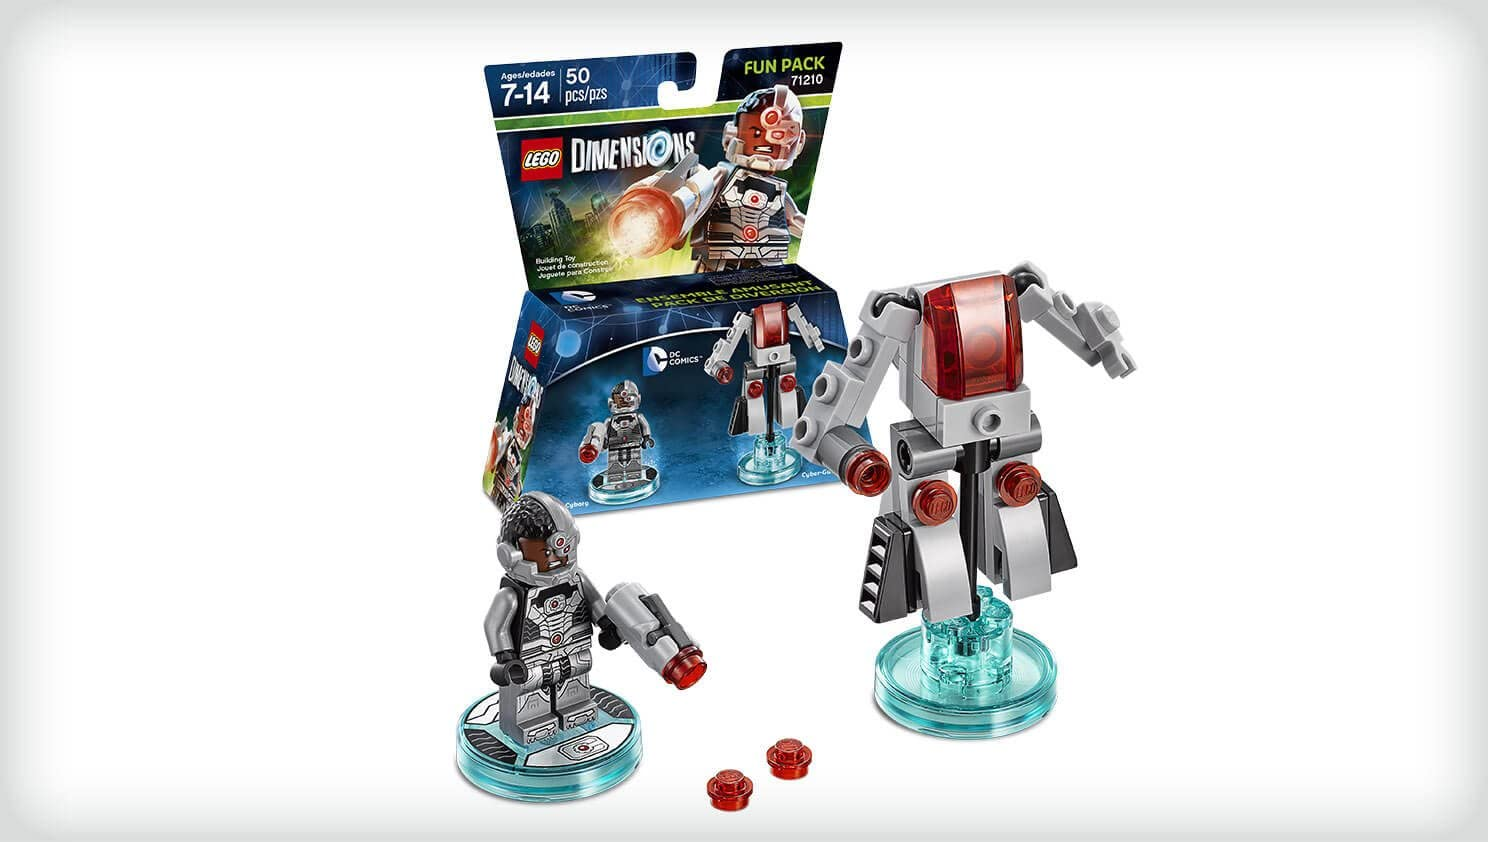 Warner Bros Interactive Spain Lego Dimensions - Cyborg Fun Pack: Amazon.es: Videojuegos